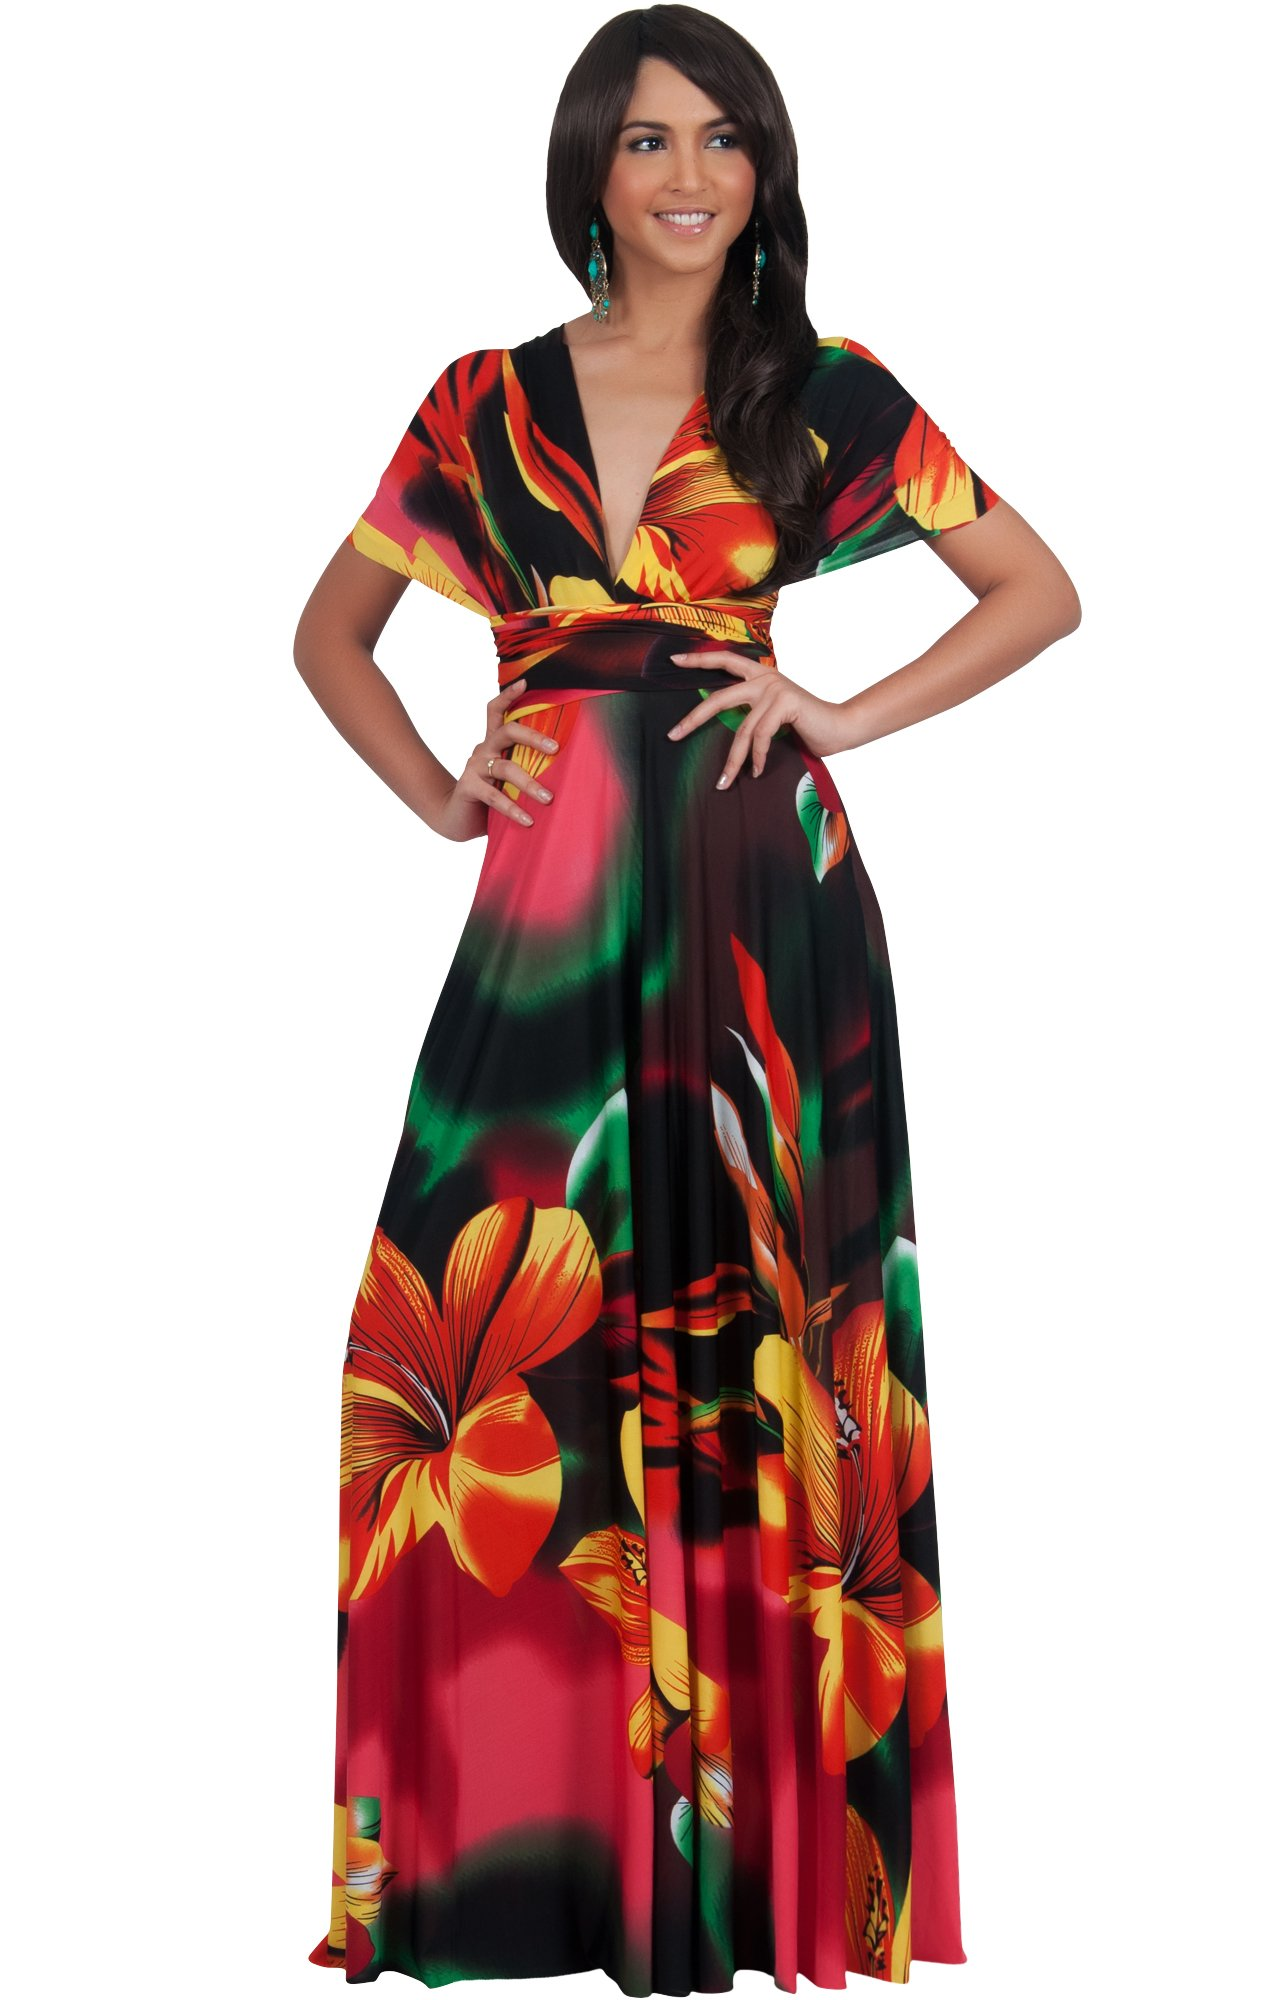 c4d533ca959 KOH KOH Plus Size Womens Long Convertible Wrap Infinity Transformer Floral  Print Summer Sexy Multi Way Evening Party Hawaiian Gown Gowns Maxi Dress  Dresses